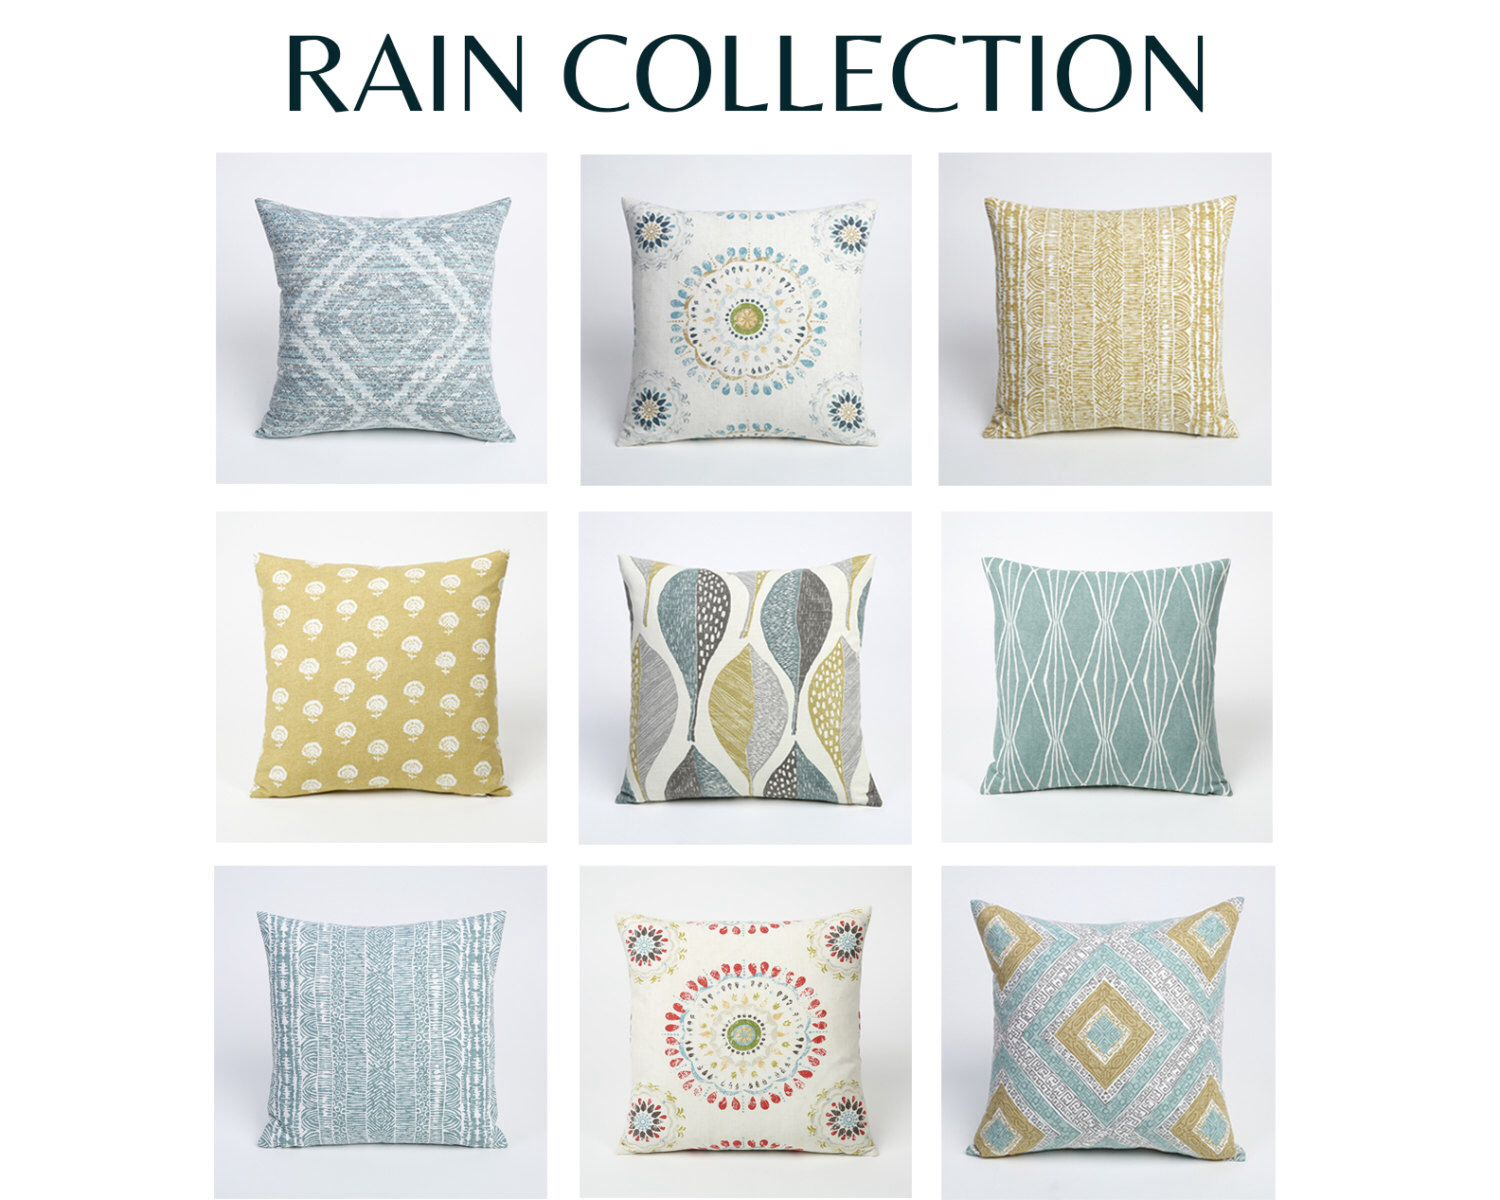 Rain Collection 26 X 26 Pillow Cover Pillow Covers 26 X 26 Couch Pillow Covers Large Throw Pillows Blue Throw Pillow Cover